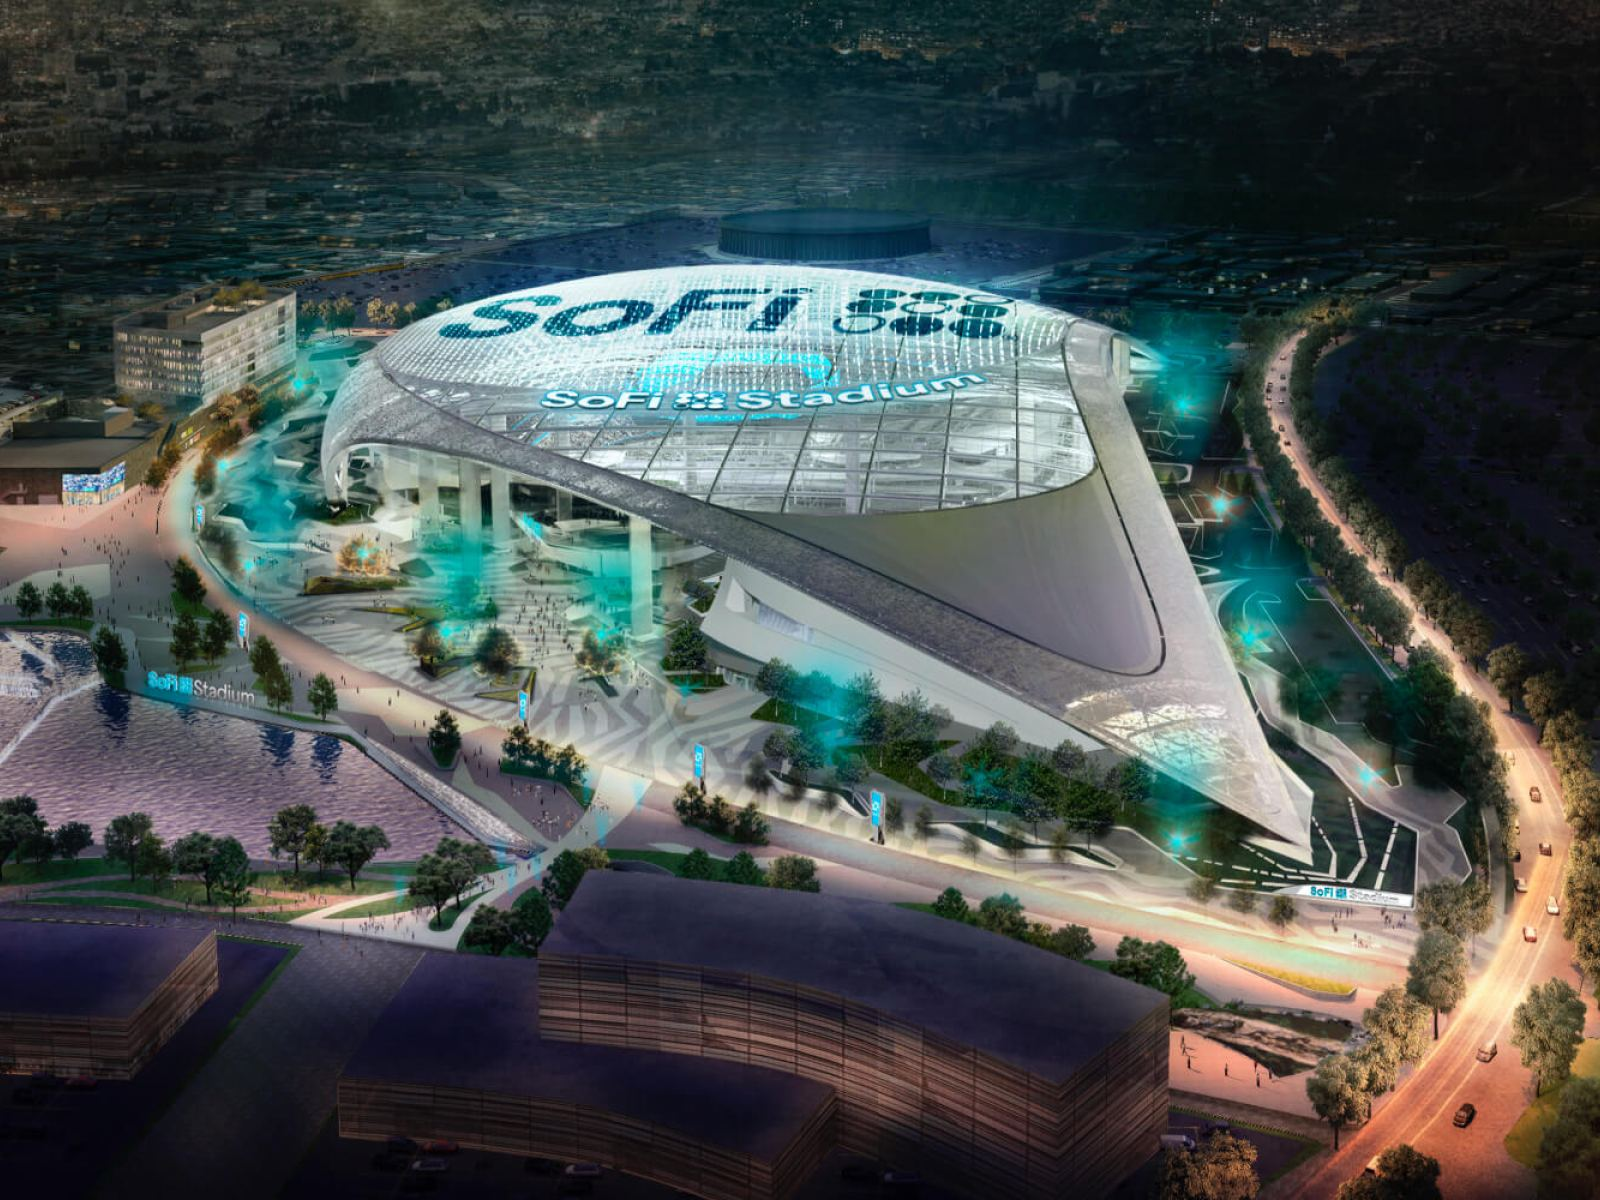 Rendering of SoFi Stadium in Inglewood